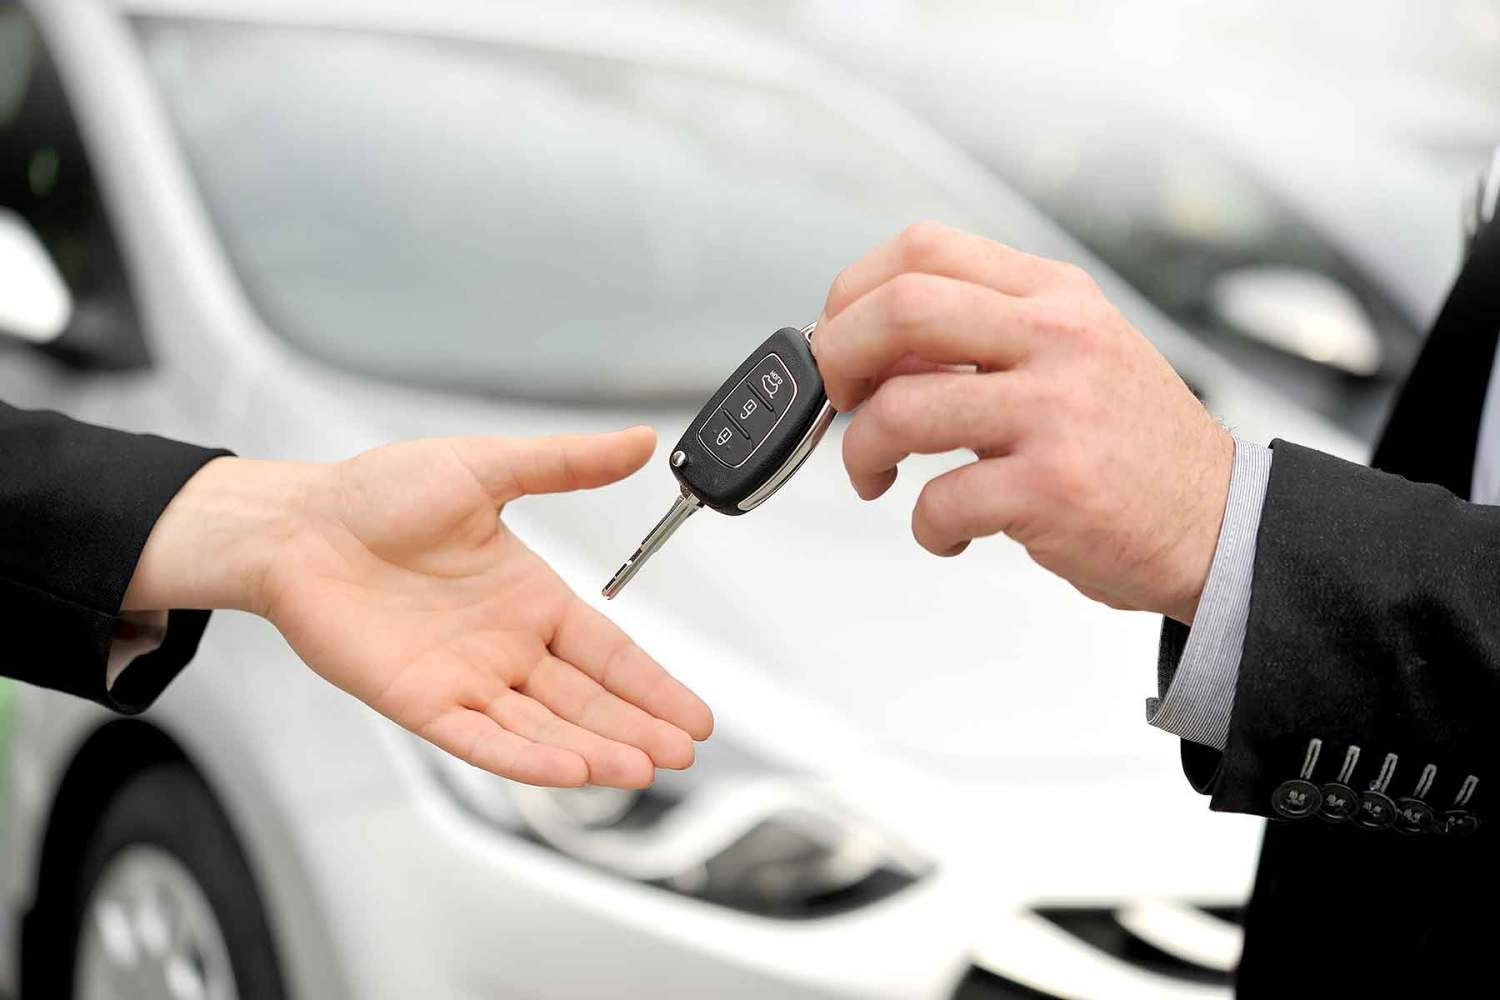 Handing over keys to a hire car